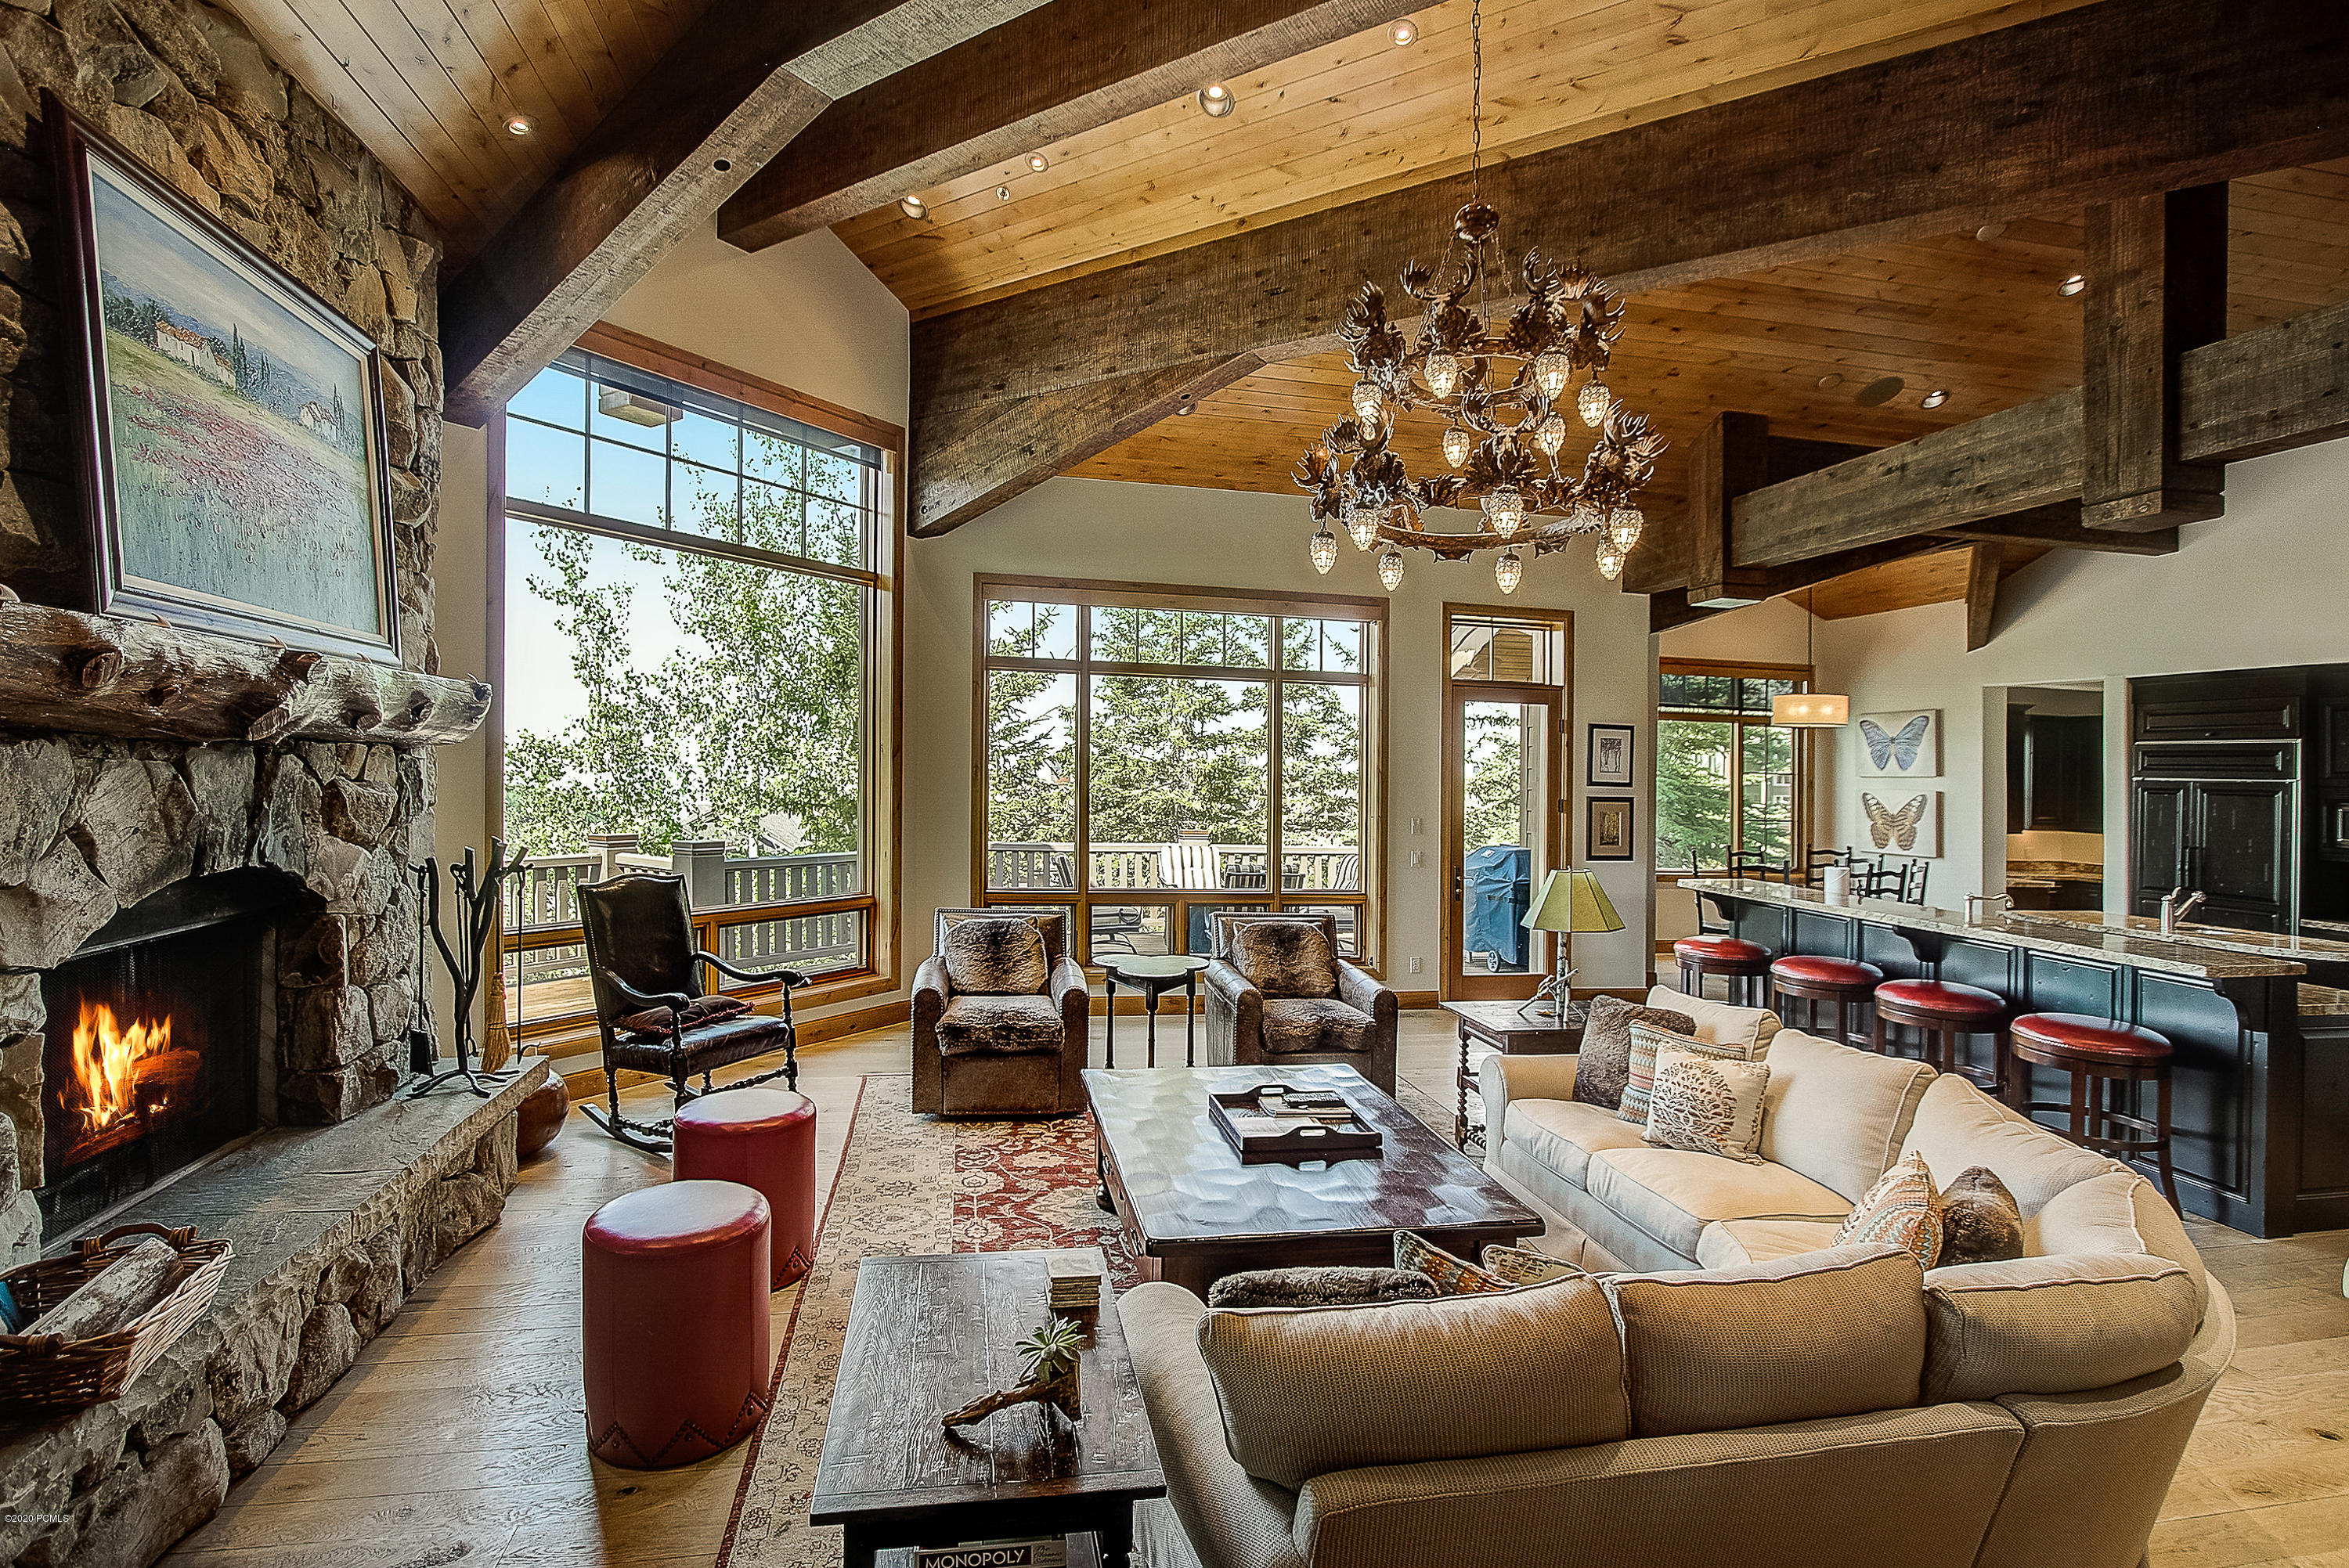 2 Northside Court, Park City, Utah 84060, 5 Bedrooms Bedrooms, ,7 BathroomsBathrooms,Single Family,For Sale,Northside,12002978